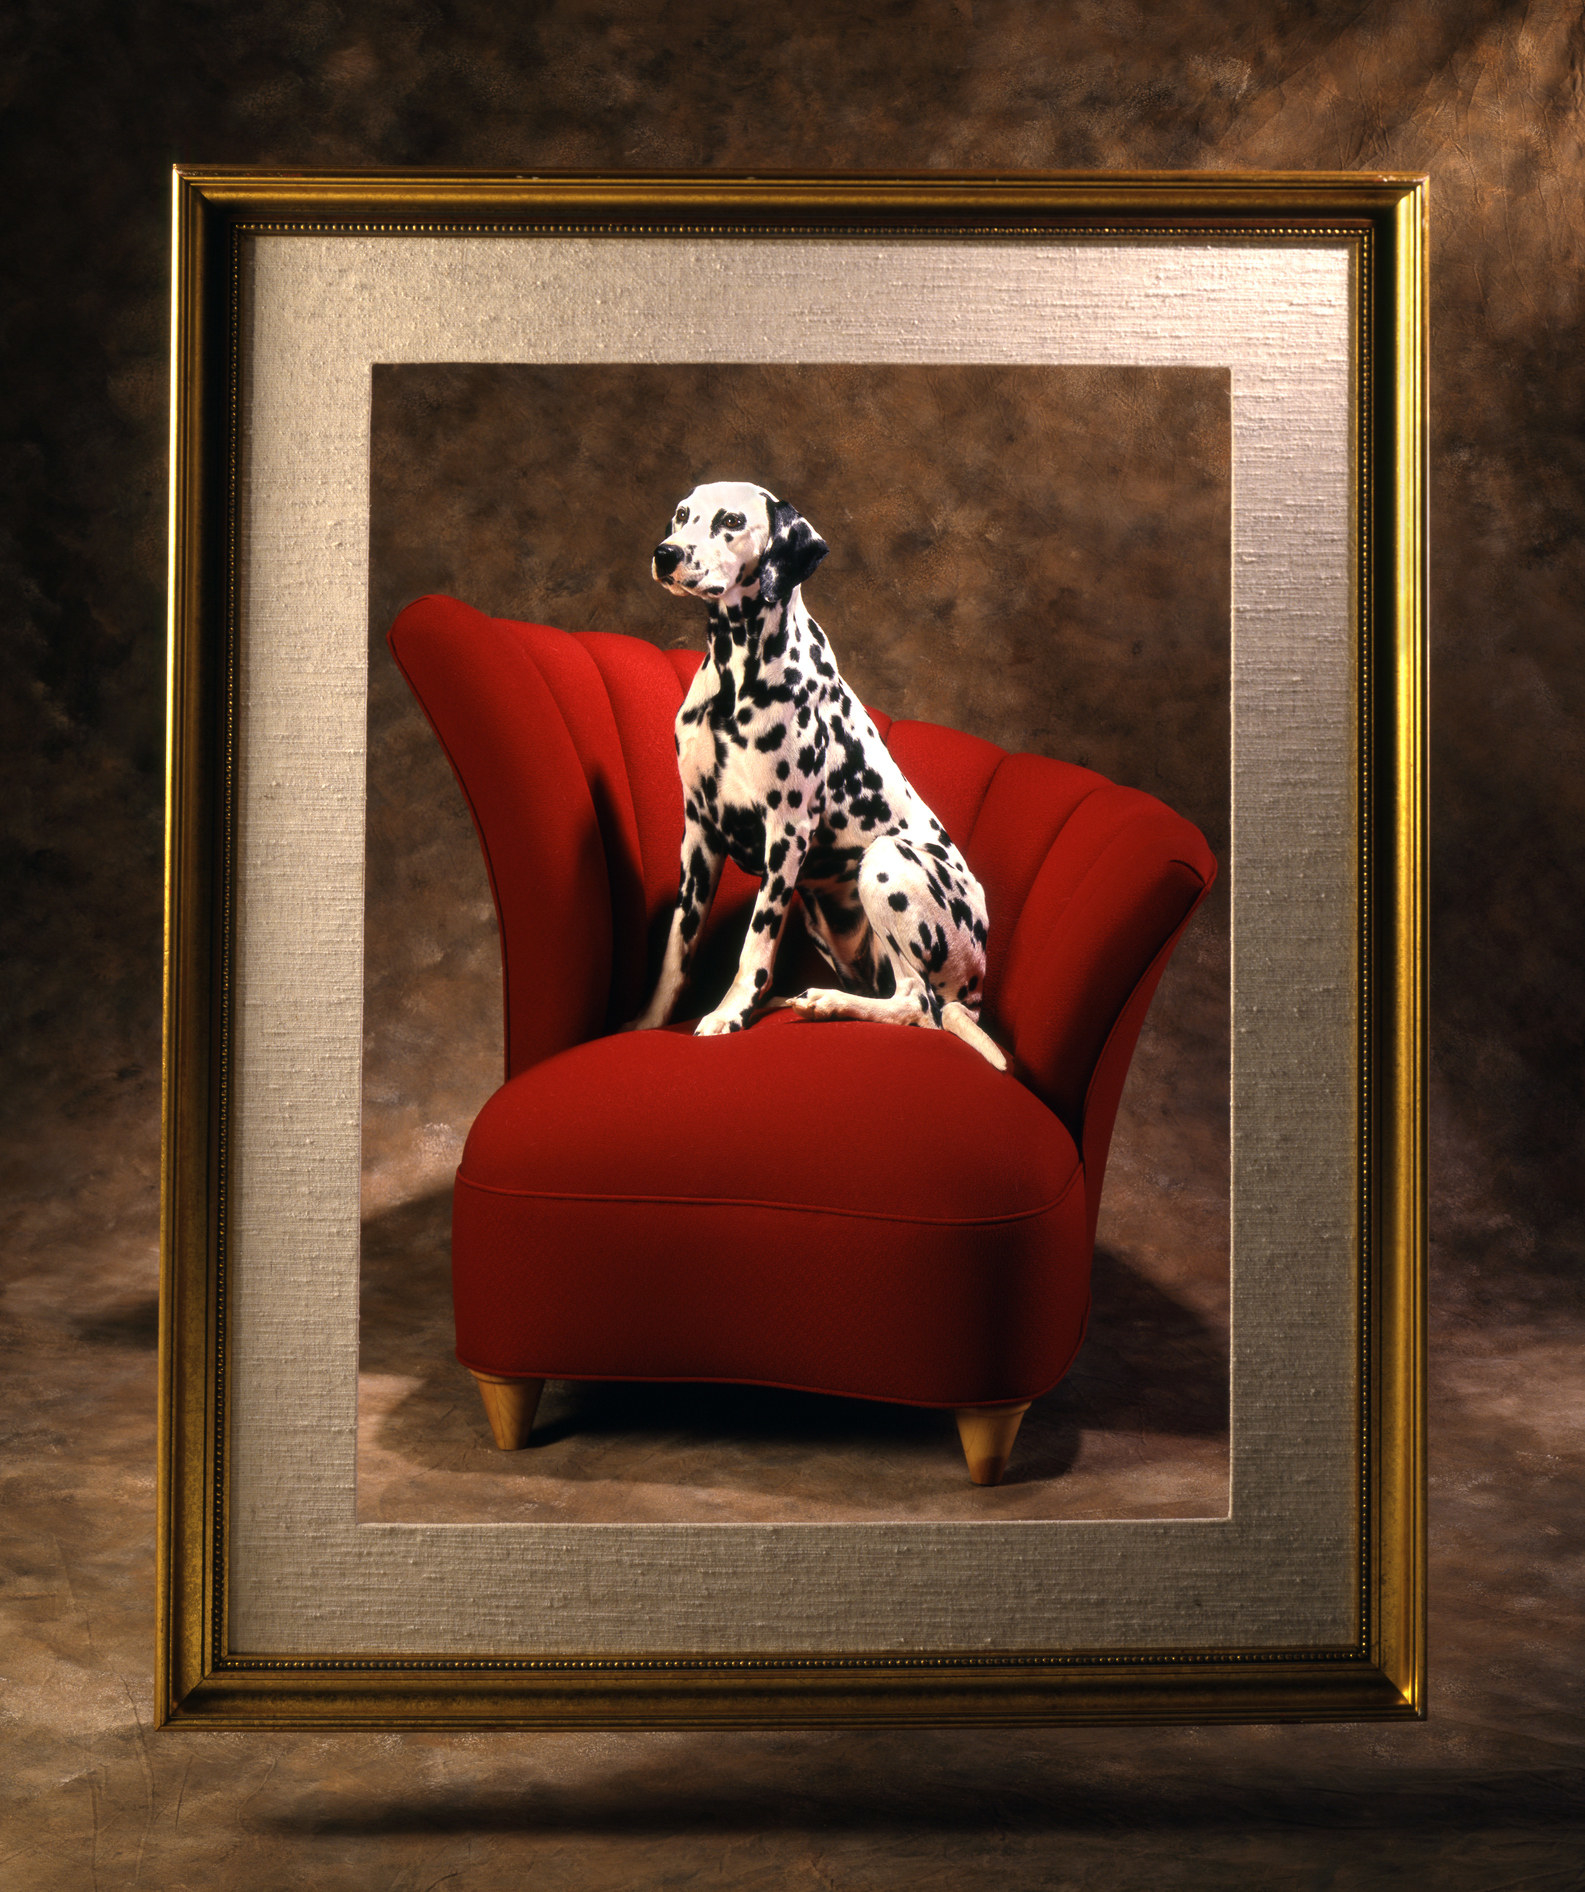 A Dalmatian on a red chair in a photo